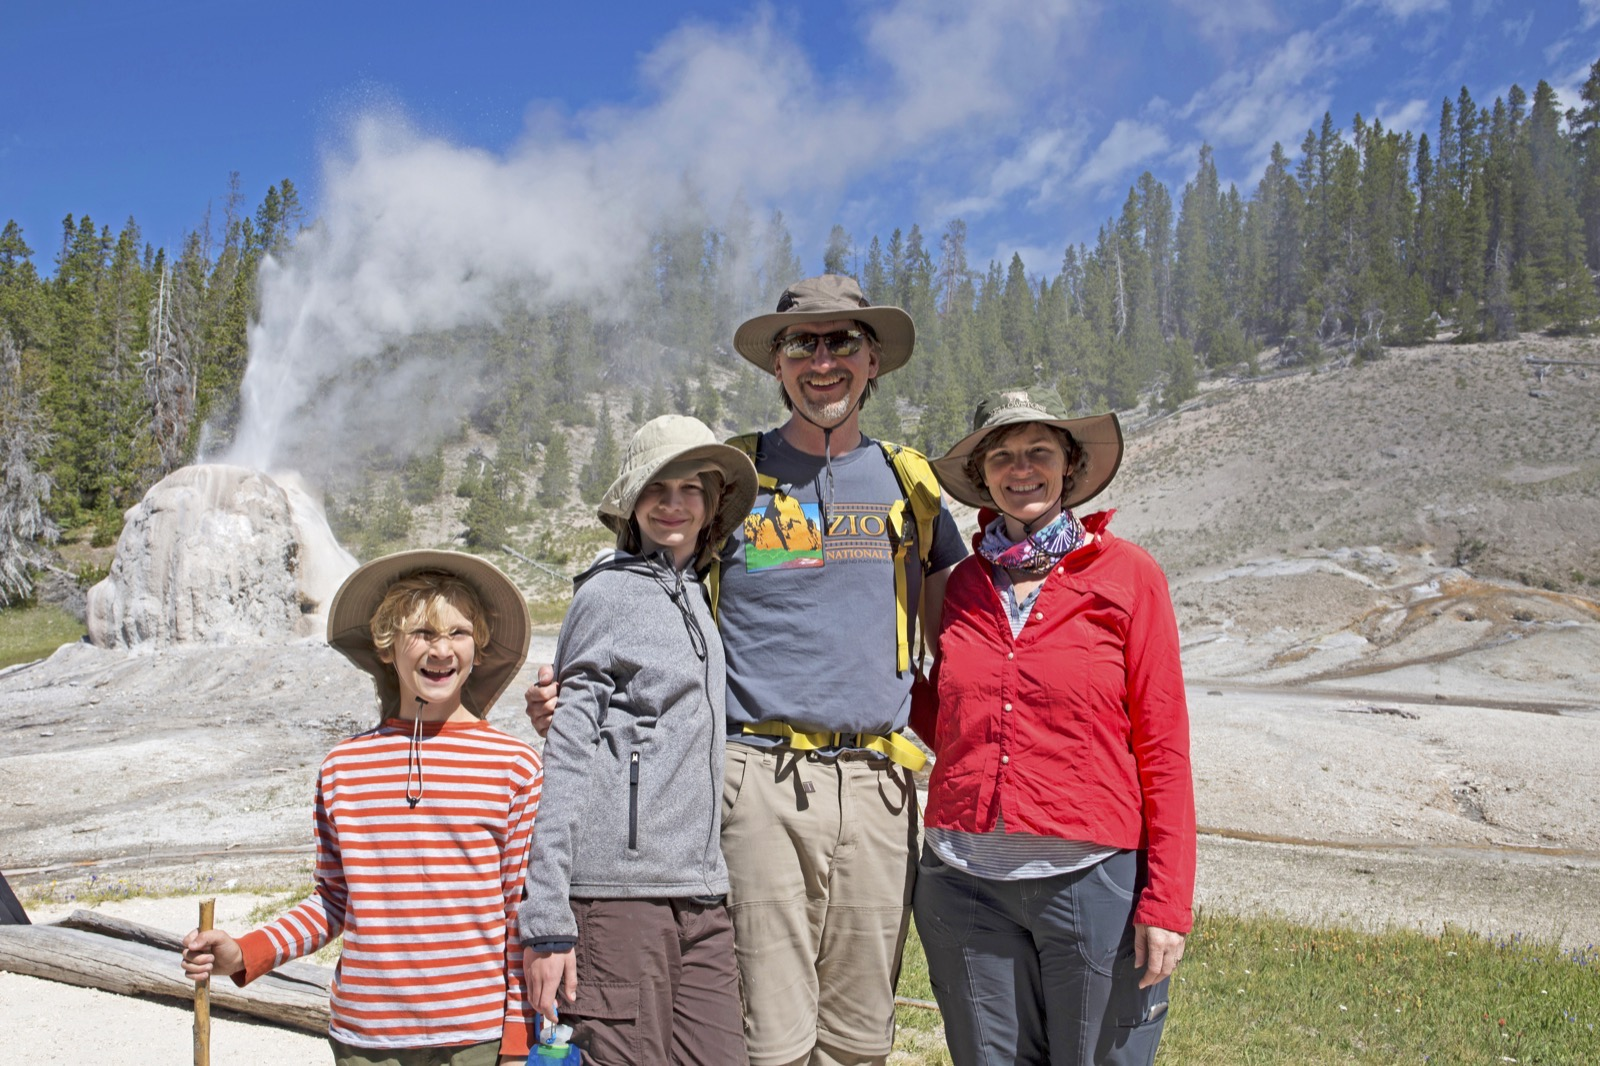 Parents and two kids stand in front of Old Faithful geyser in Yellowstone.